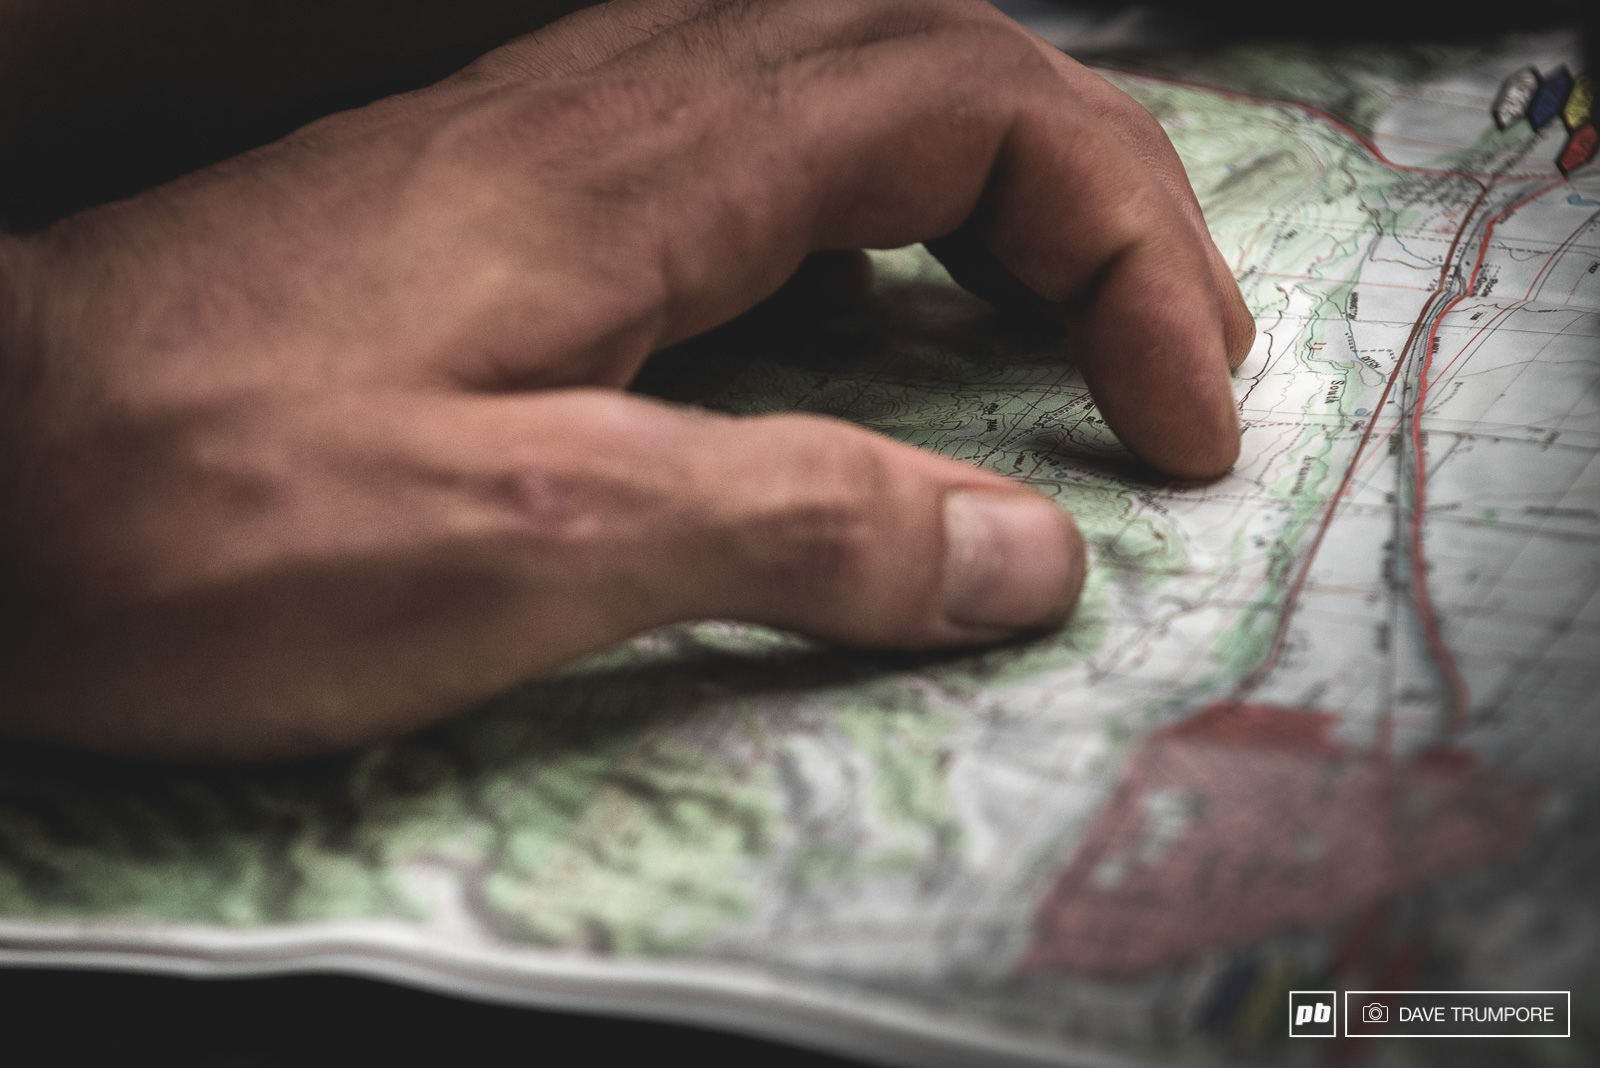 With cold weather on the horizon it was time to hit the road and explore a few new spots on the map.